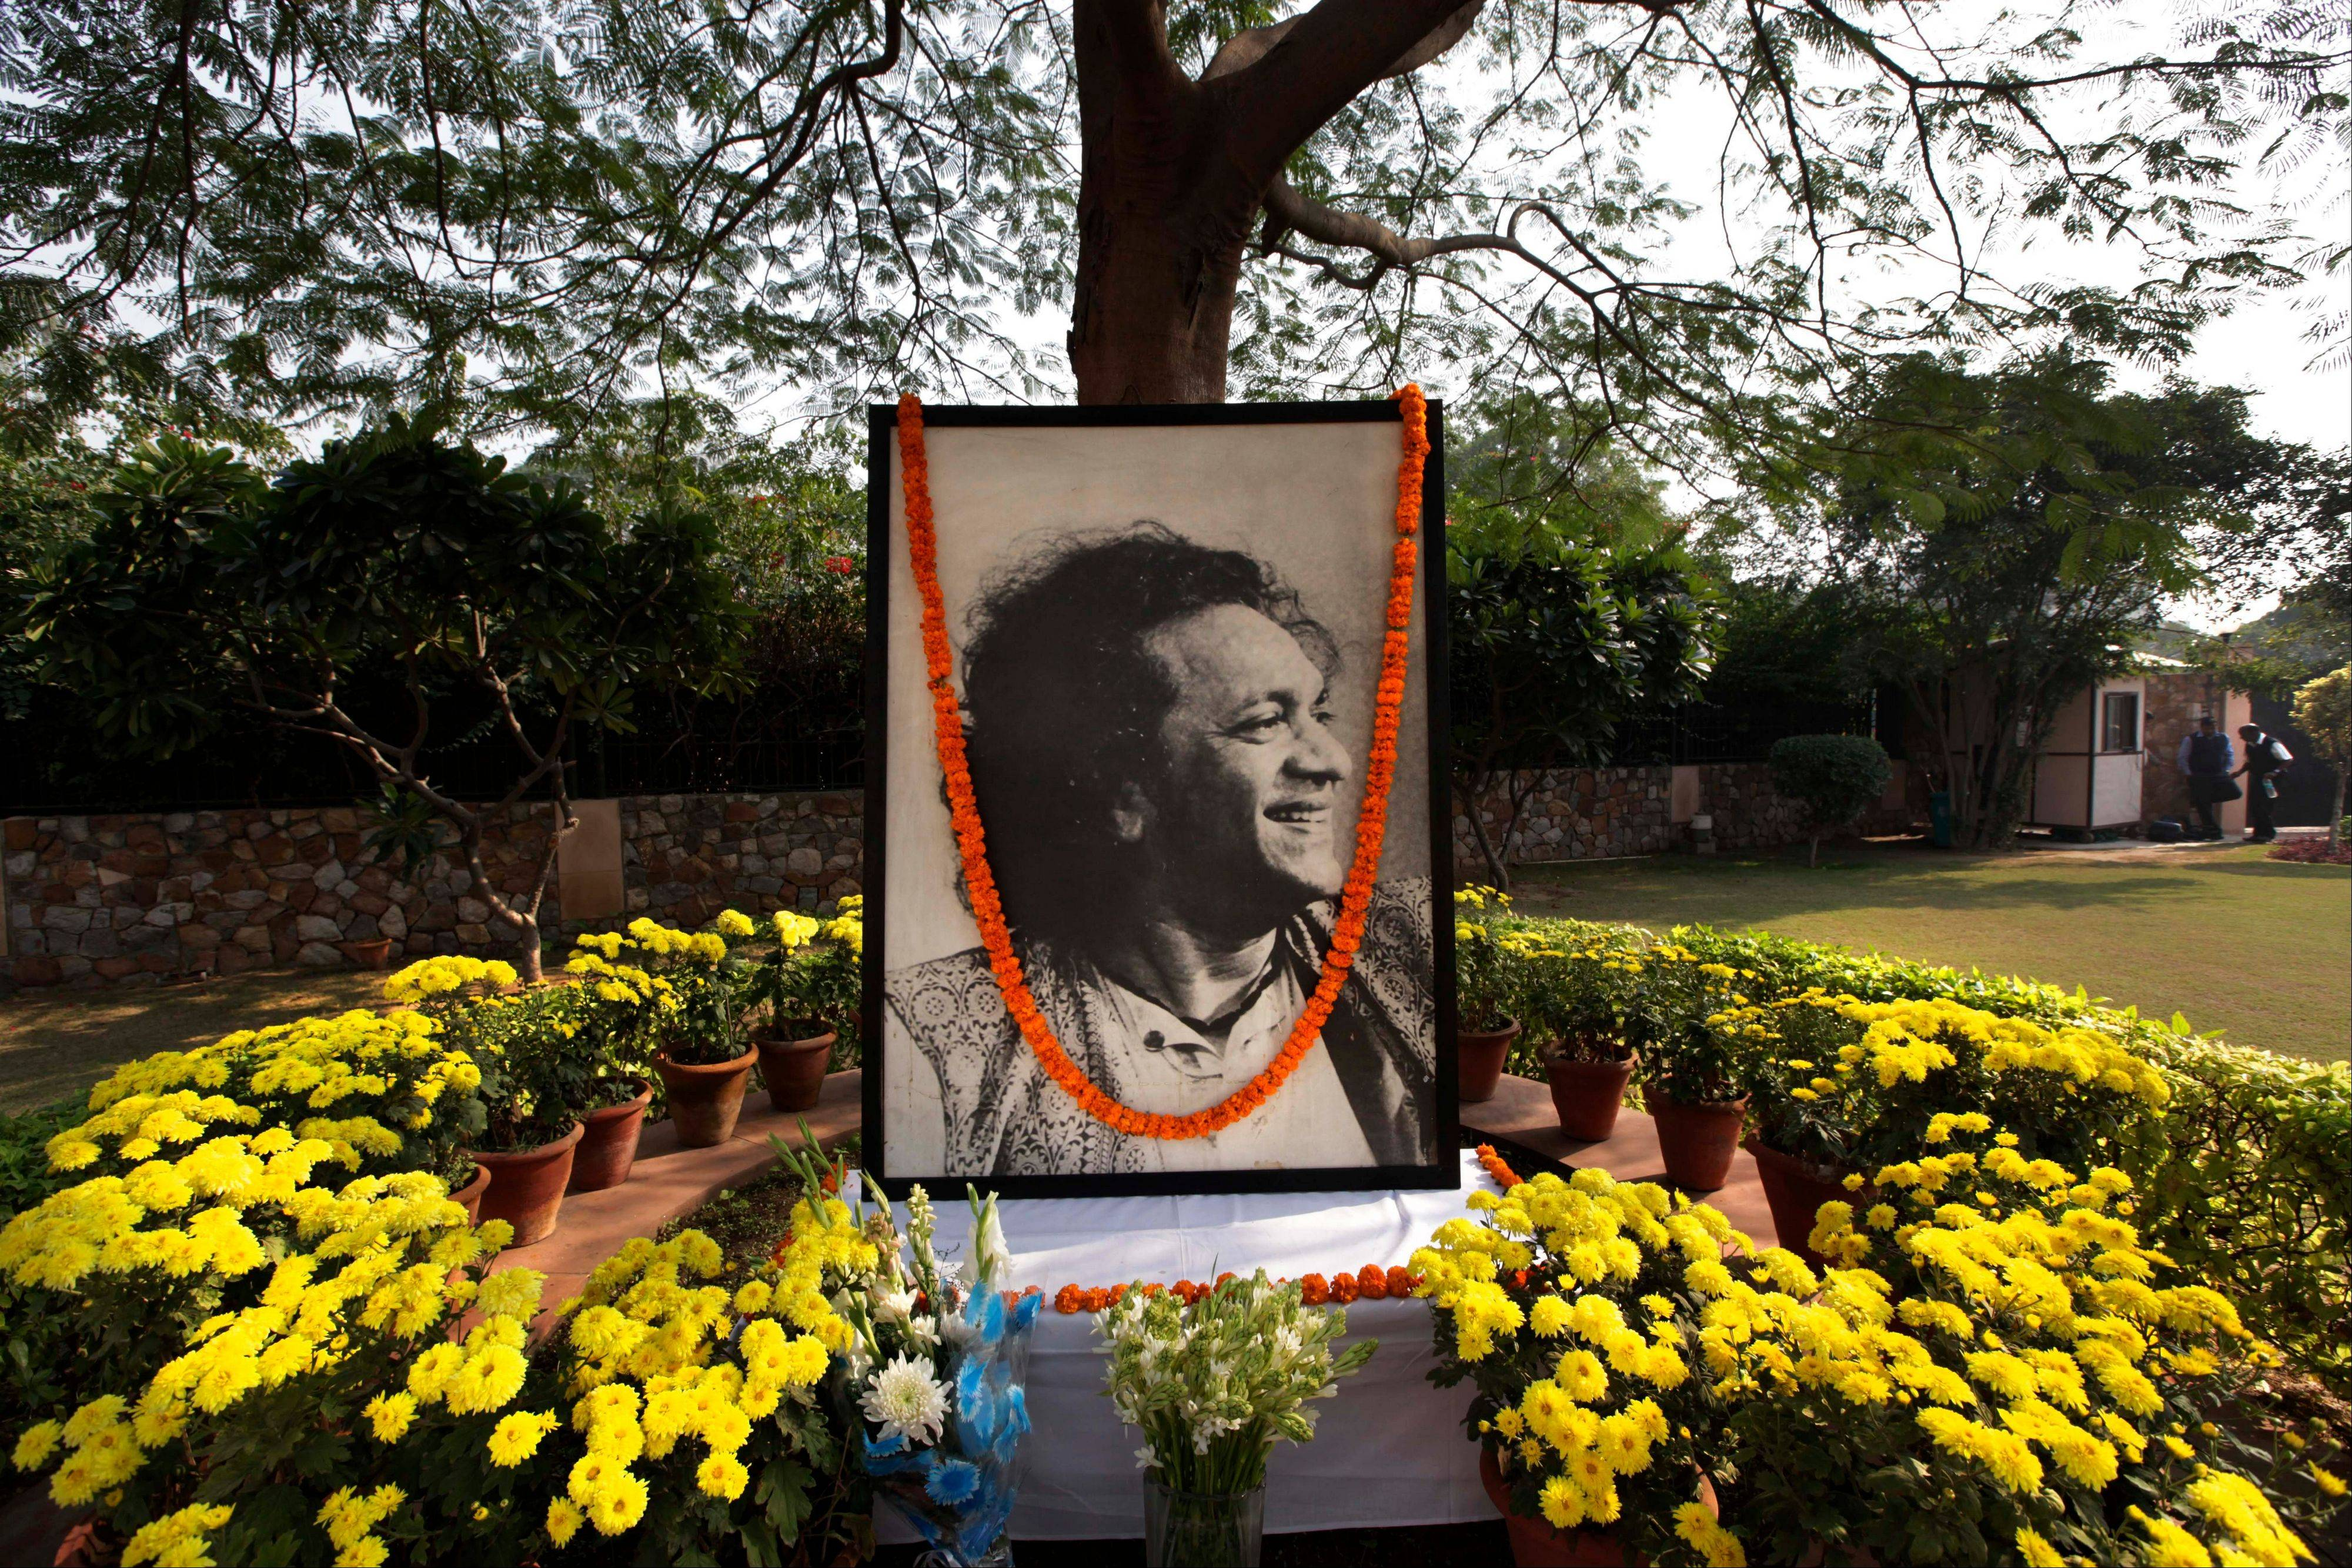 A portrait of legendary Indian sitar player Ravi Shankar is placed under a tree Wednesday as part of a makeshift memorial at his music center, in New Delhi, India. Shankar, who is credited with connecting the world to Indian music, died Tuesday in San Diego at the age of 92.